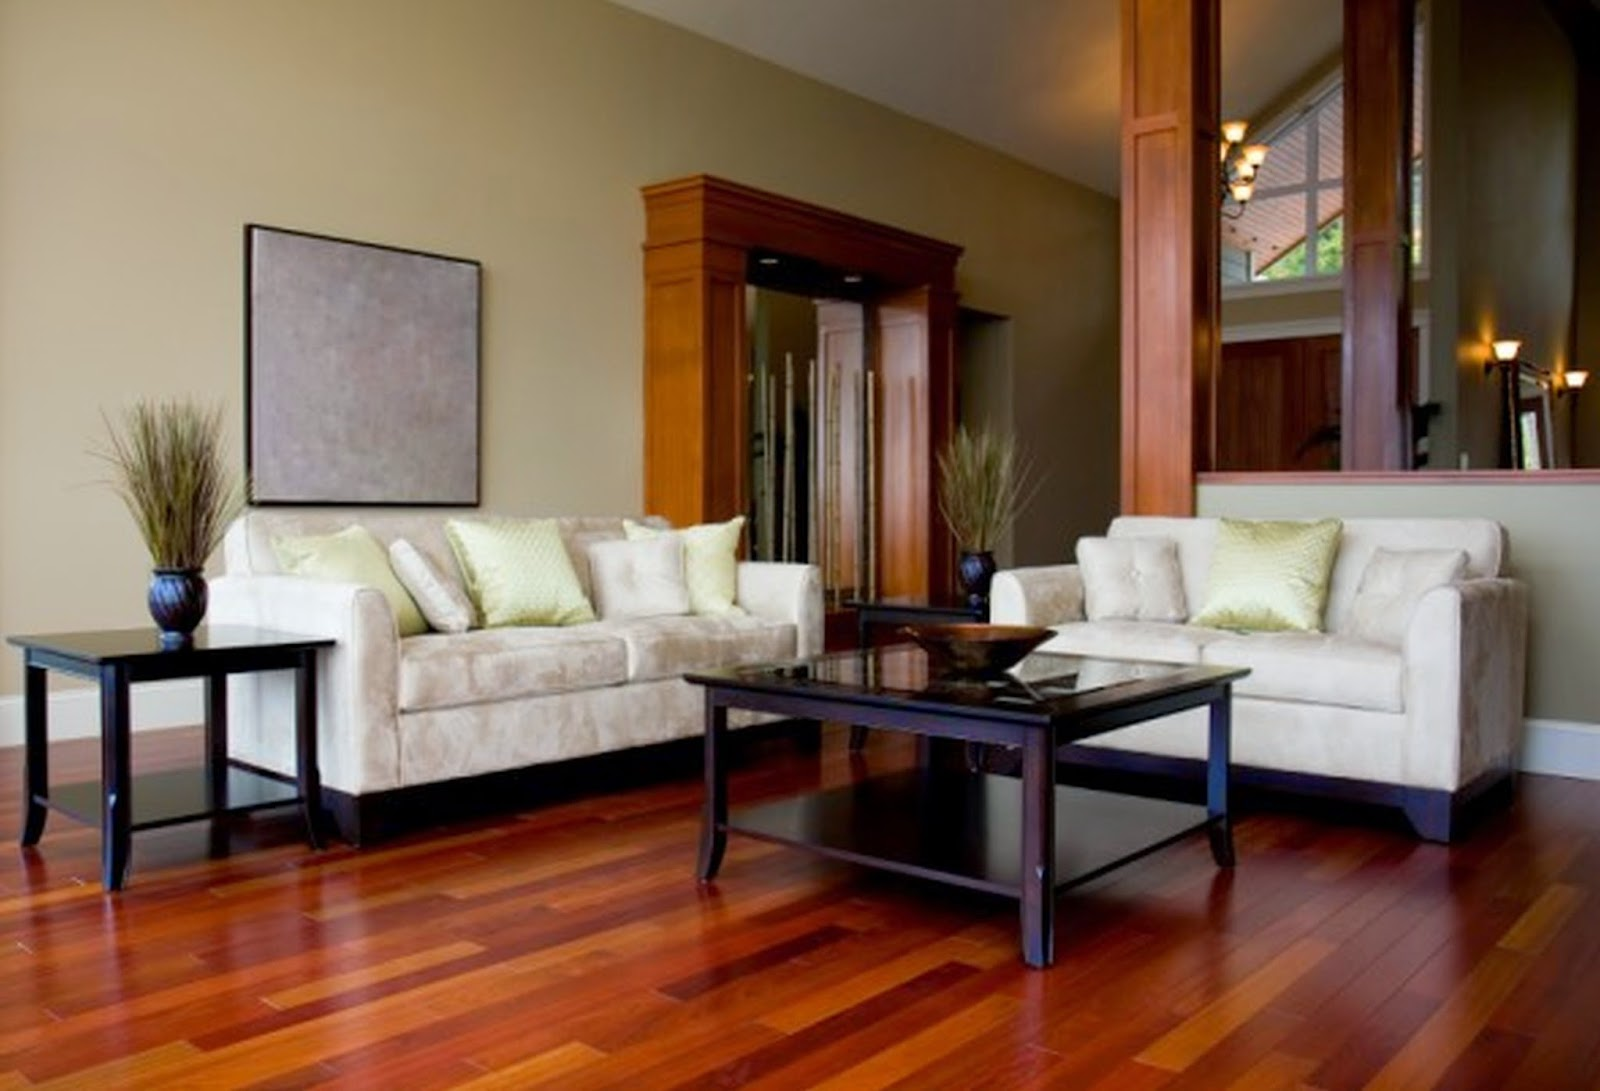 1 Living Room Ideas For Small Condos Home Design HD Wallpapers